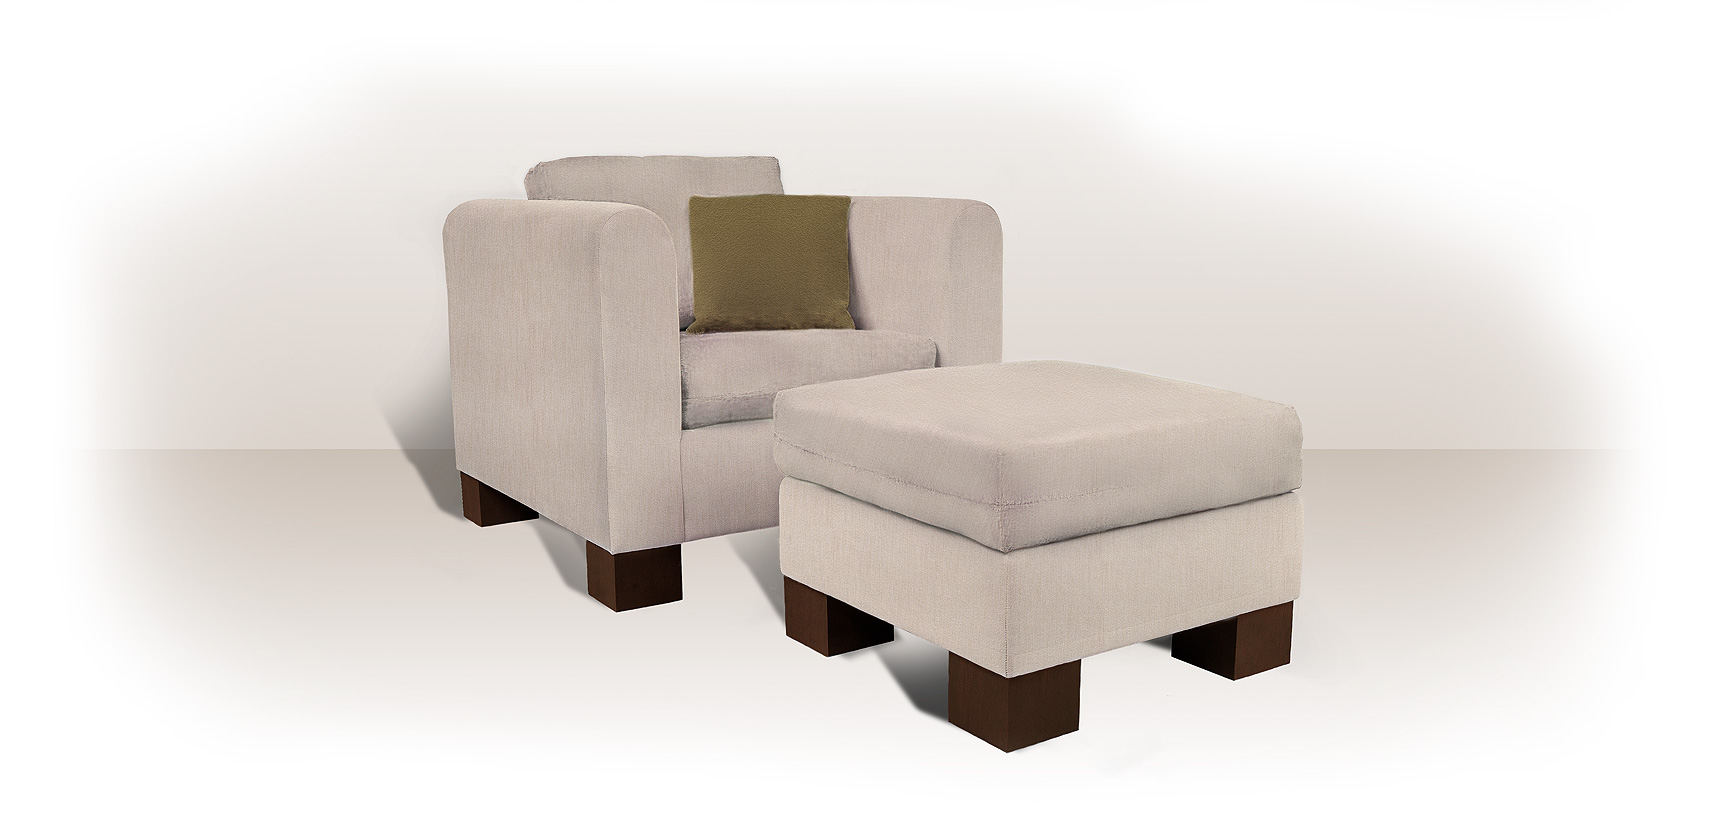 Super Suave Collection Sara Jaffe Designs Caraccident5 Cool Chair Designs And Ideas Caraccident5Info